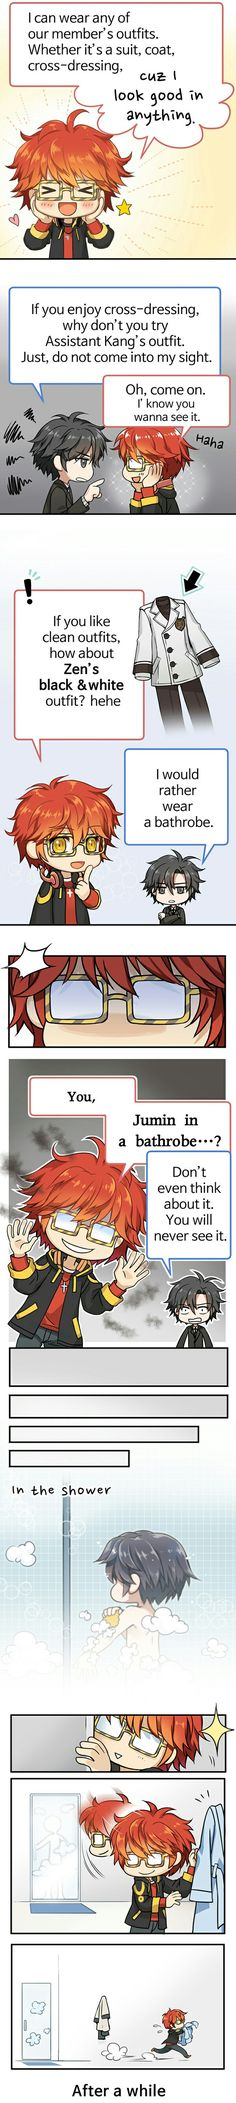 Mystic Messenger: Ask Me Anything 06 Part 2